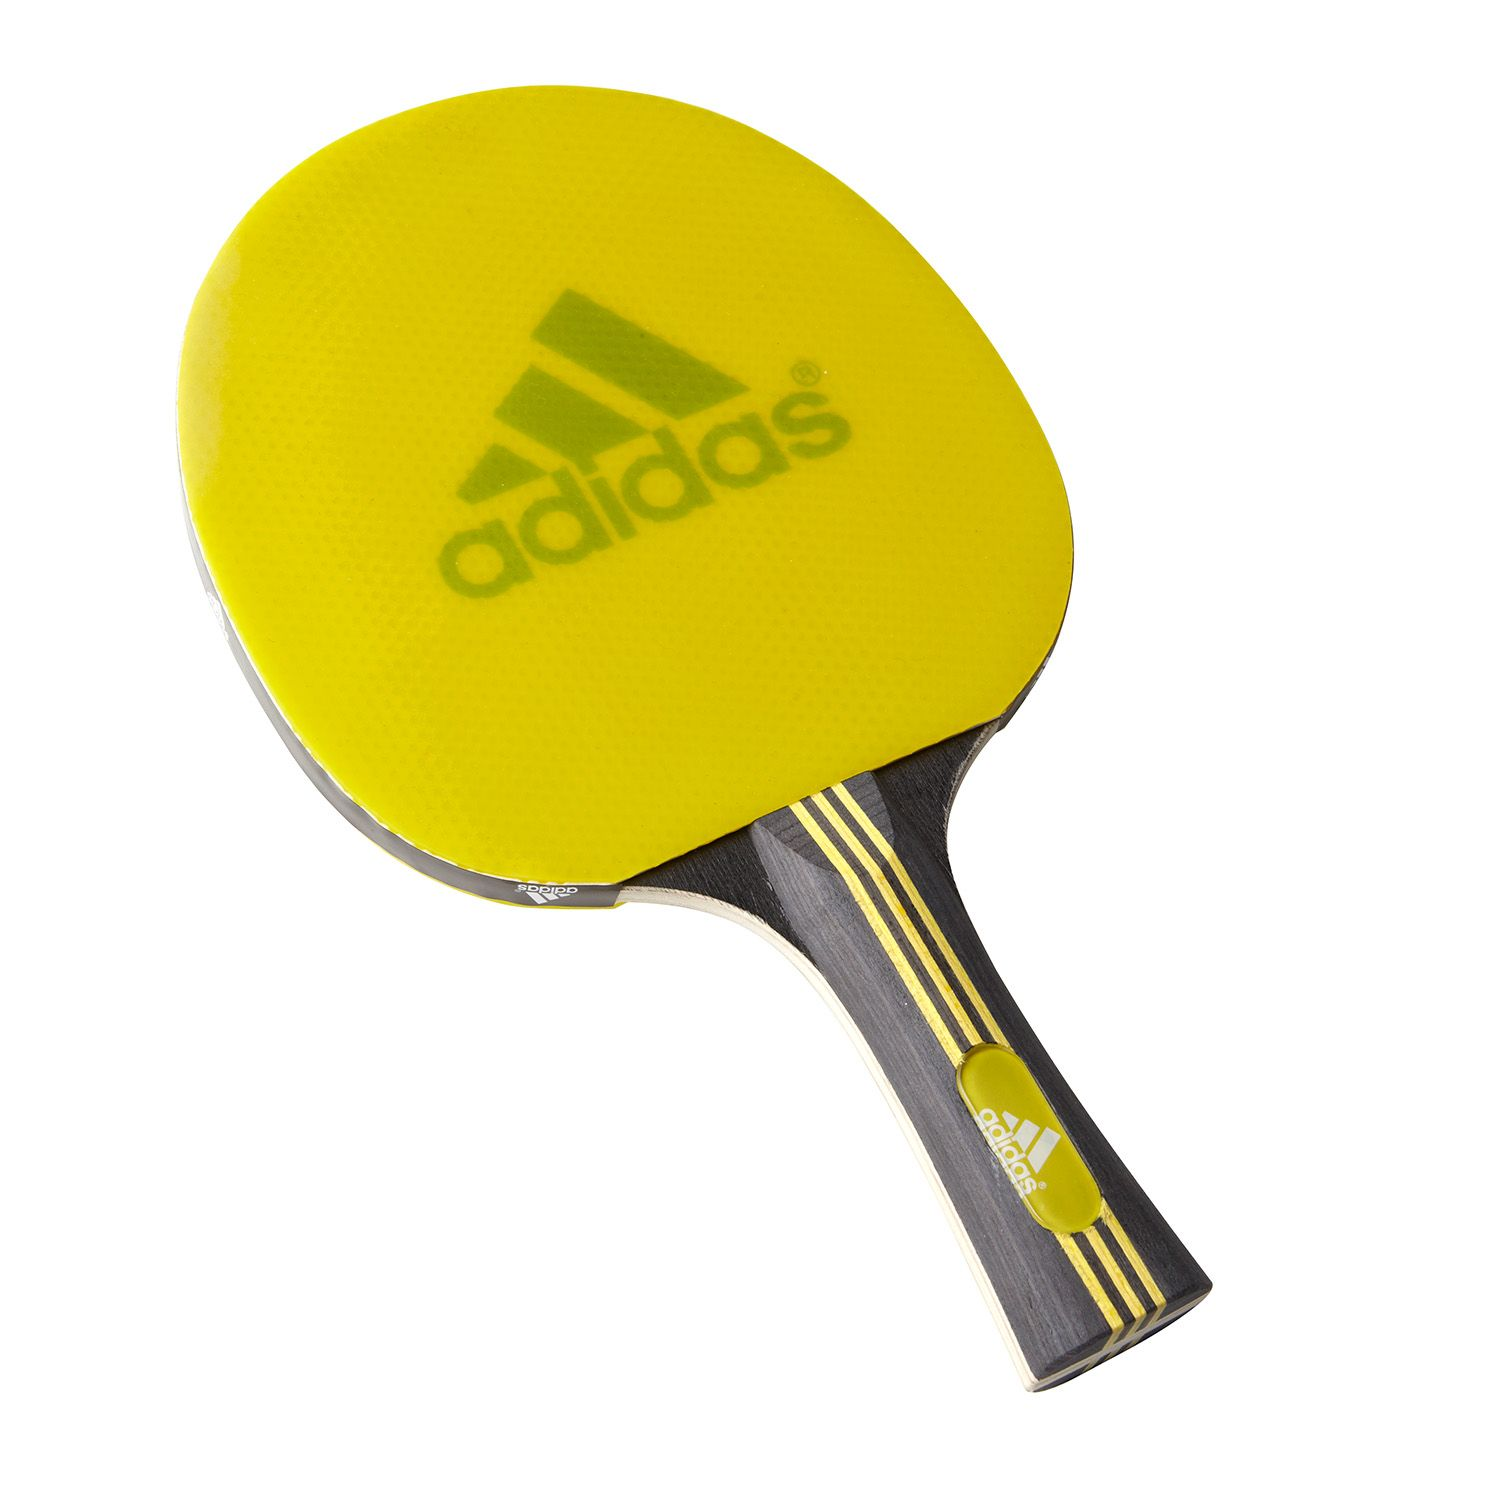 Adidas Laser Table Tennis Bat on ping pong racket